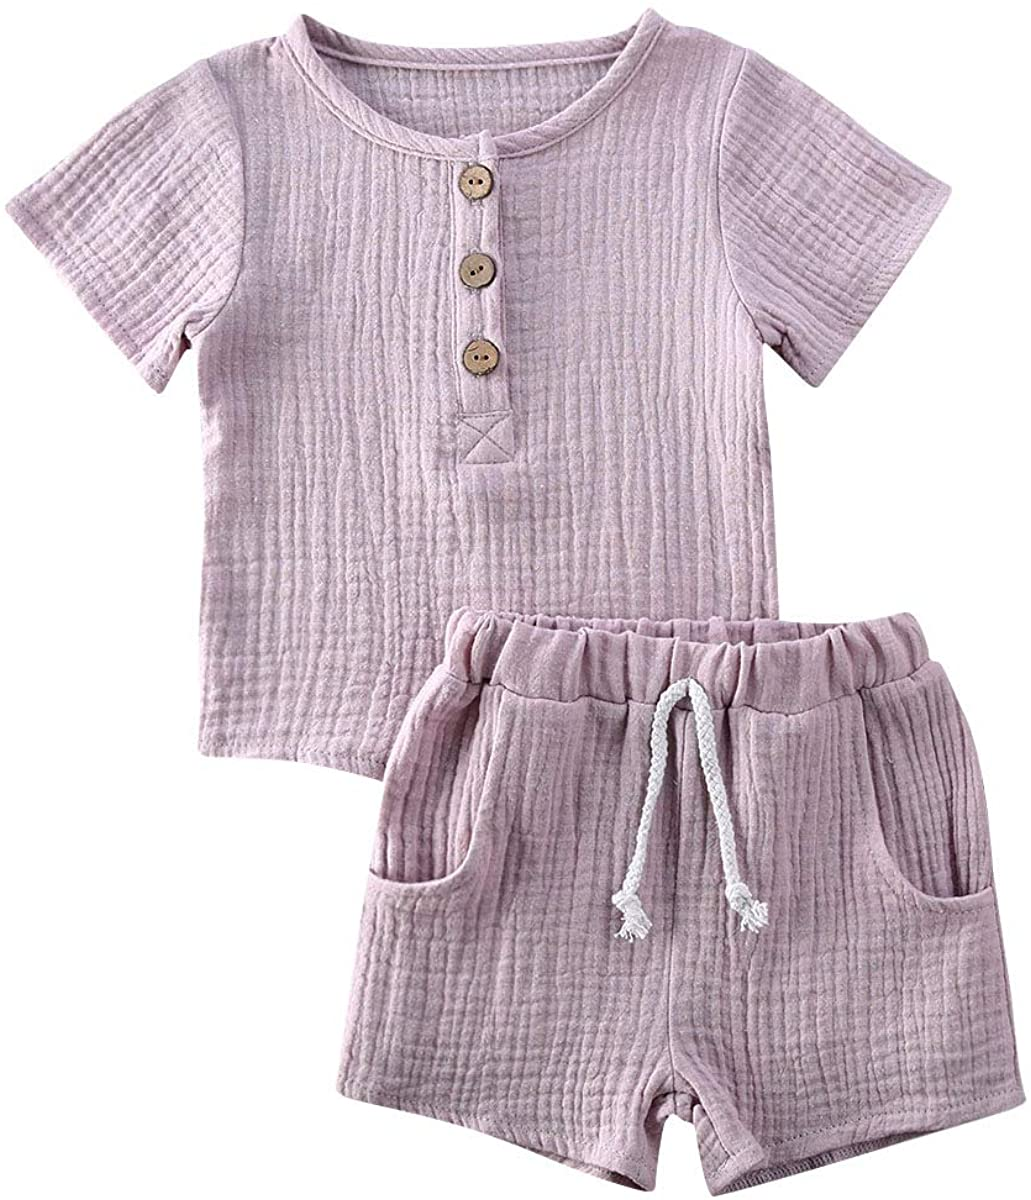 Toddler Kids Baby Boy Girl Short Outfits Cotton Linen Solid Buttons Tops+Drawstring Shorts